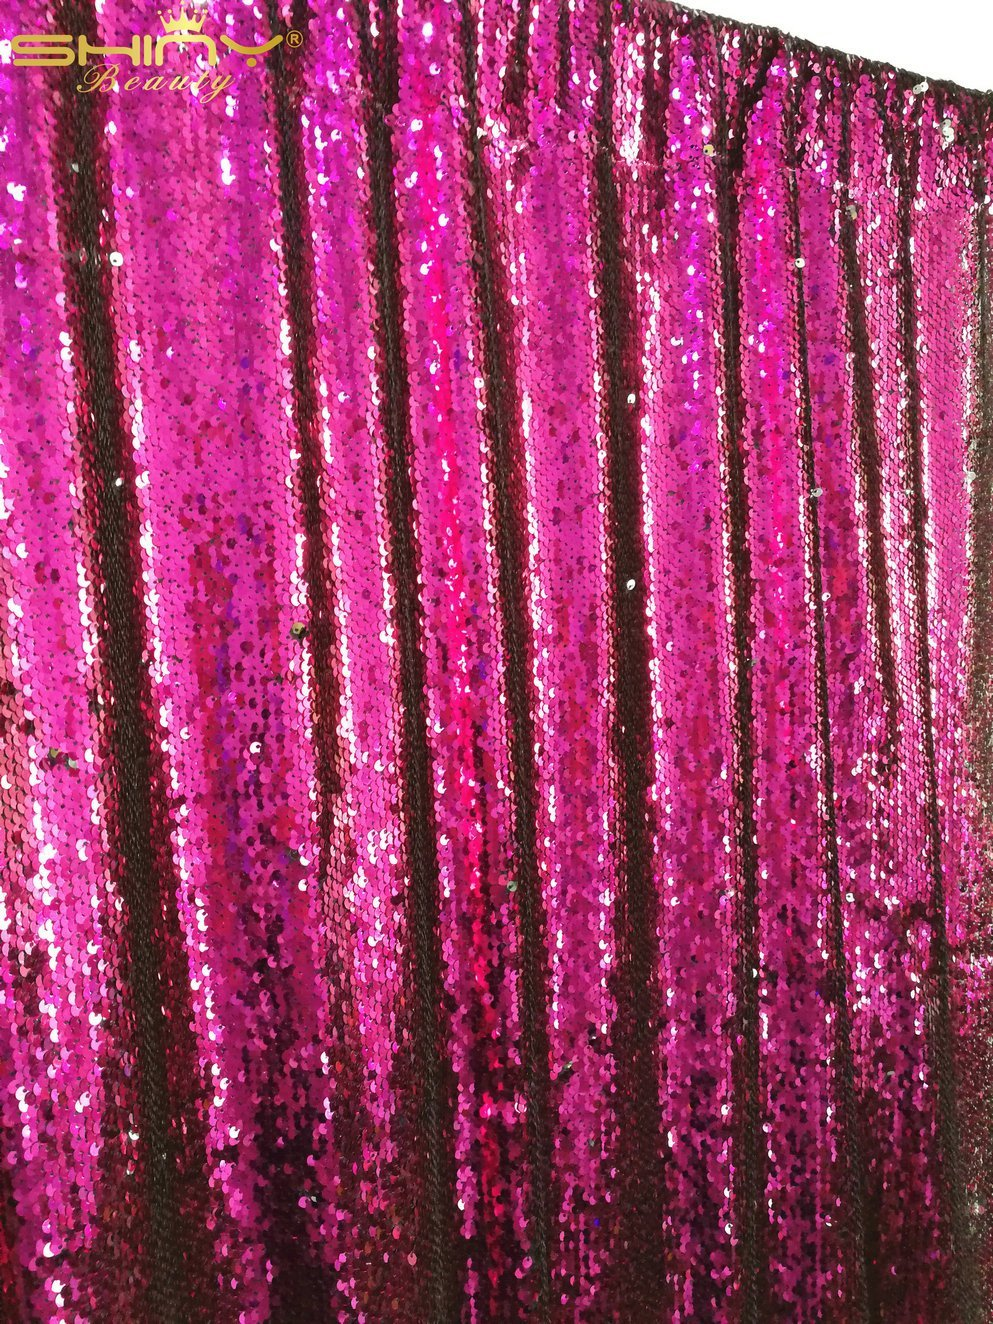 Pink Sequin Curtains Buy 8ftx10ft Sequin Backdrops Silver Sequin Fabric Wedding